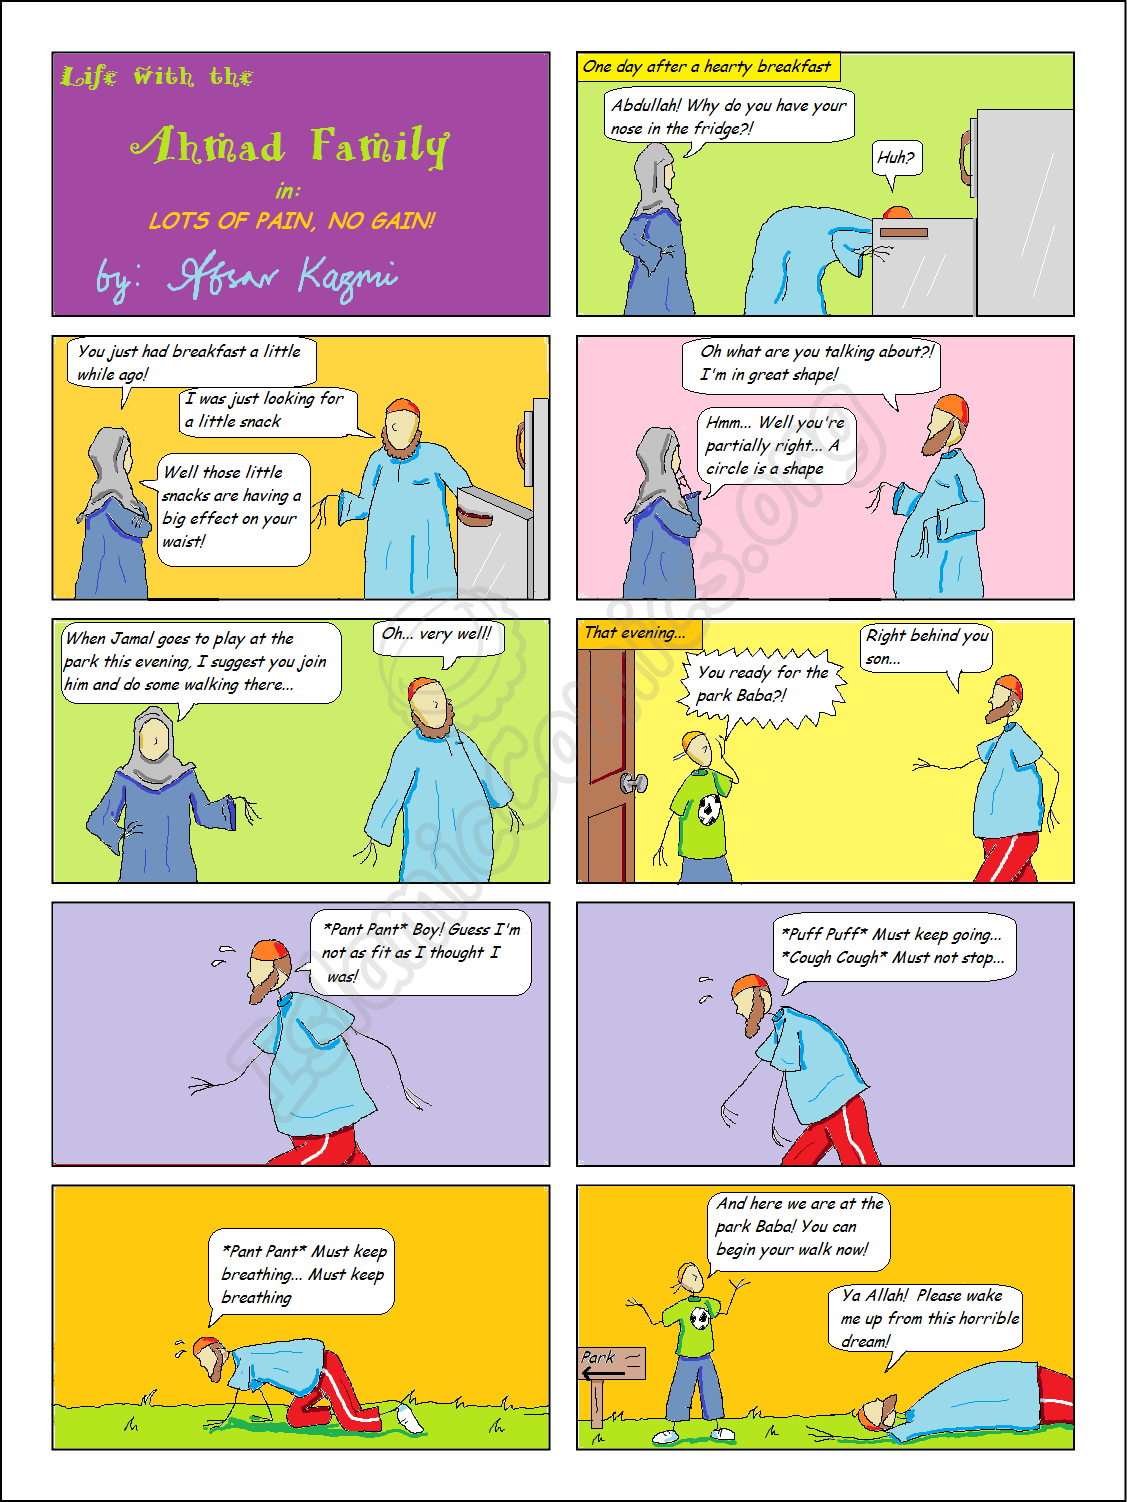 Life with the Ahmad Family comics - Lots of Pain, No Gain!